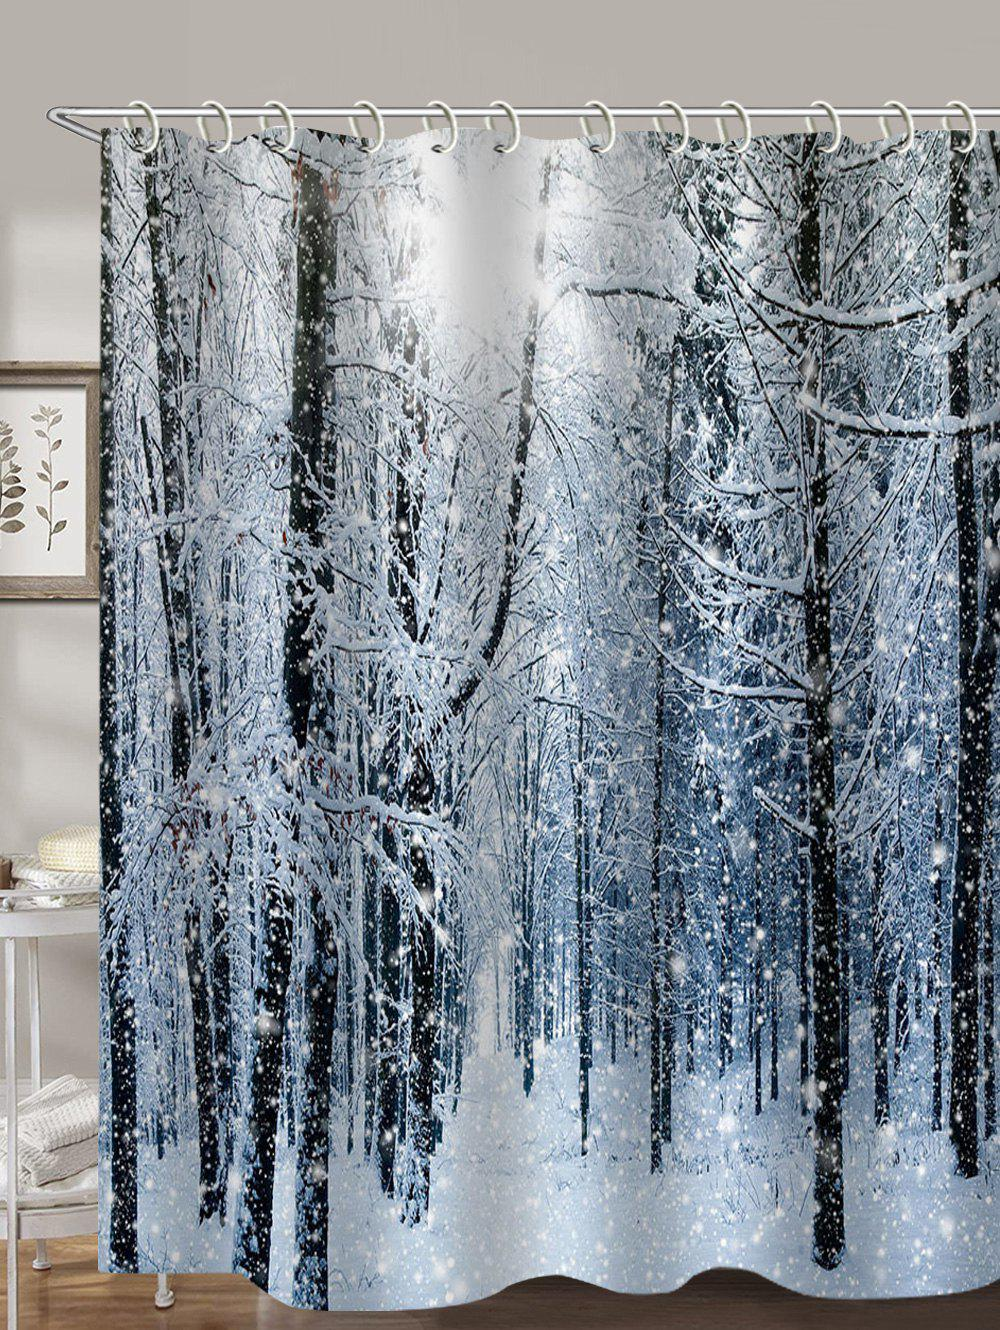 Snow Forest 3D Print Shower Curtain - multicolor W71 X L71 INCH